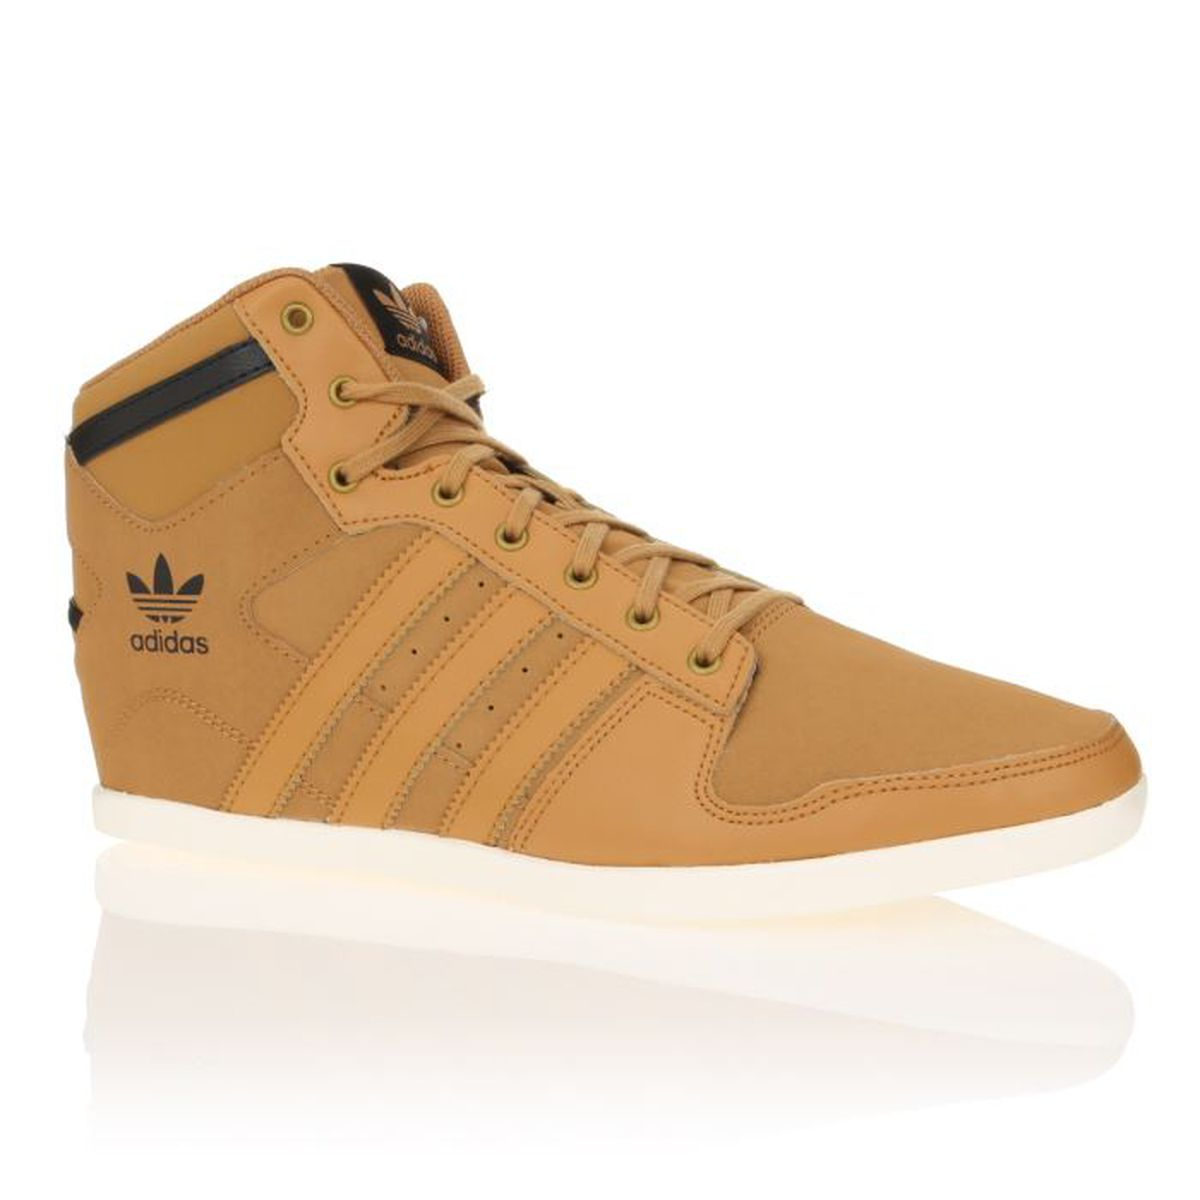 adidas homme camel